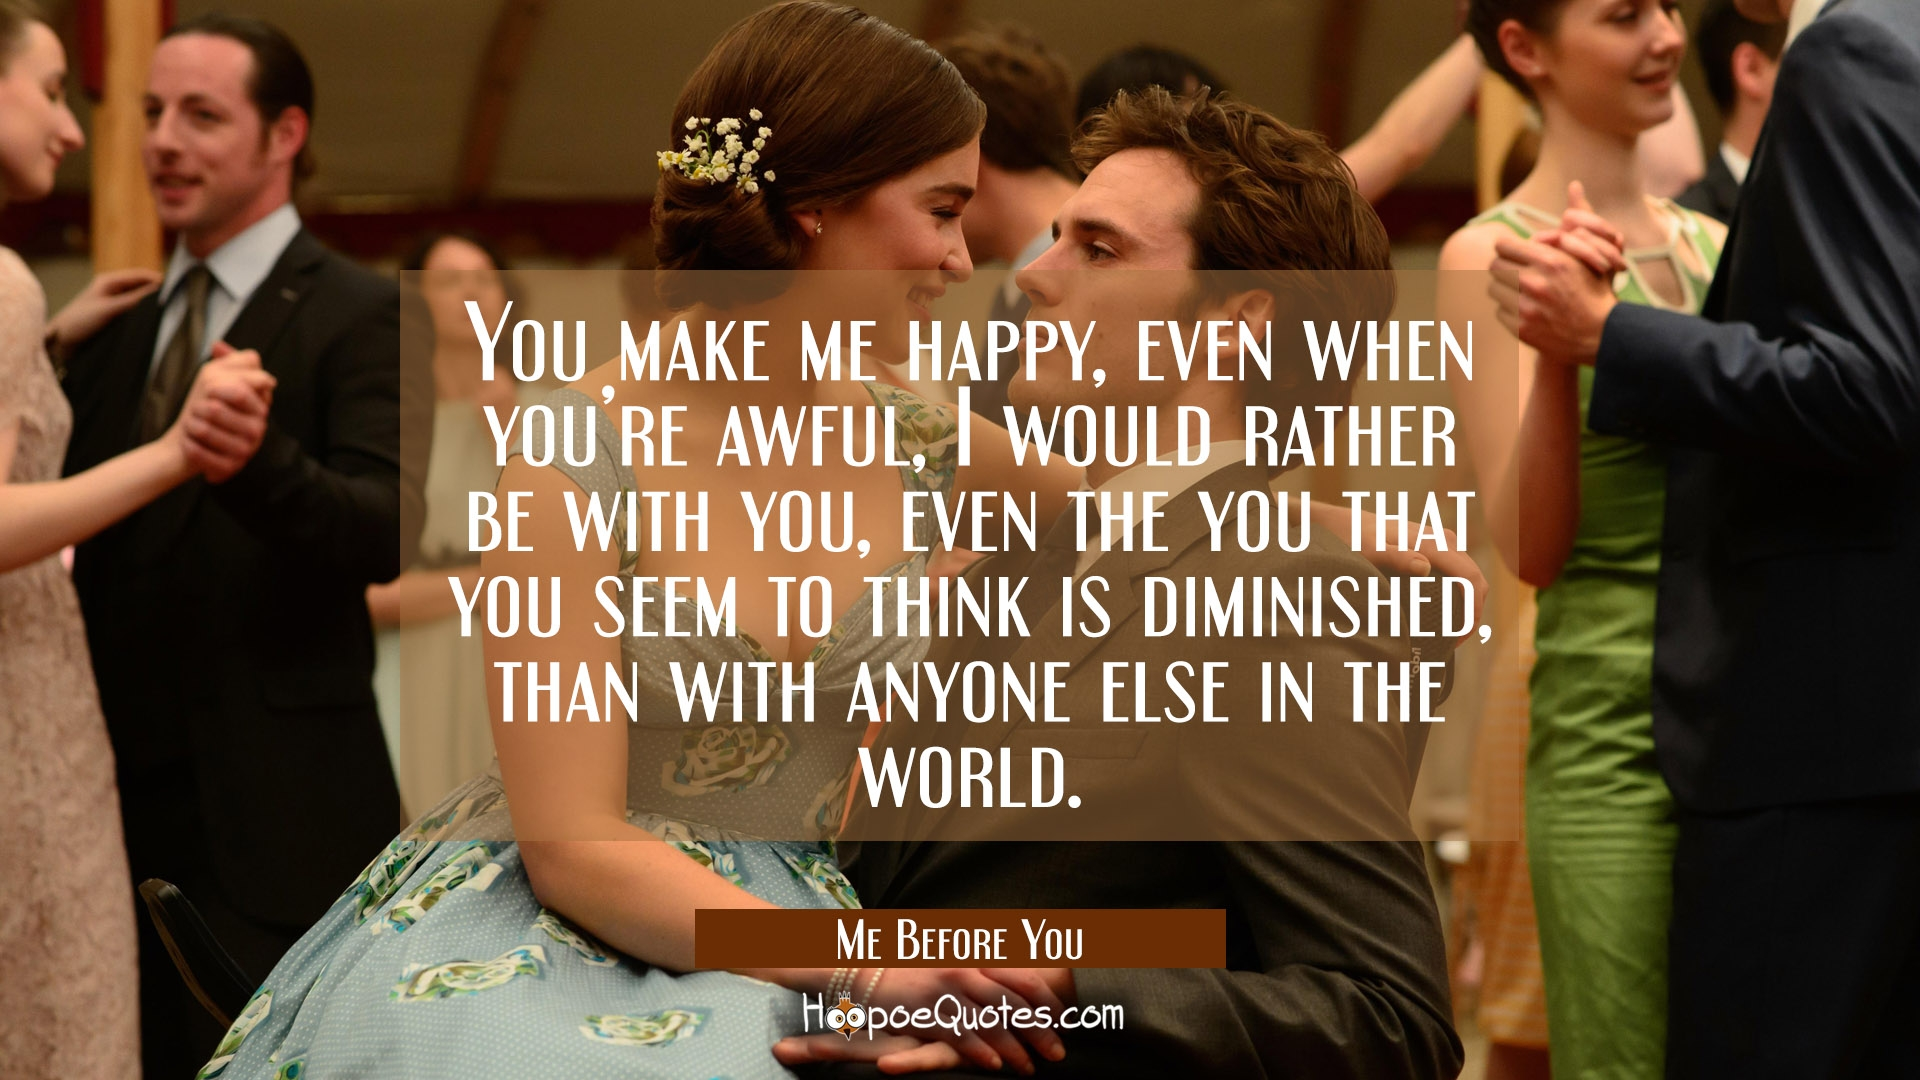 Me Before You Quotes Interesting You Make Me Happy Even When You're Awful I Would Rather Be With .